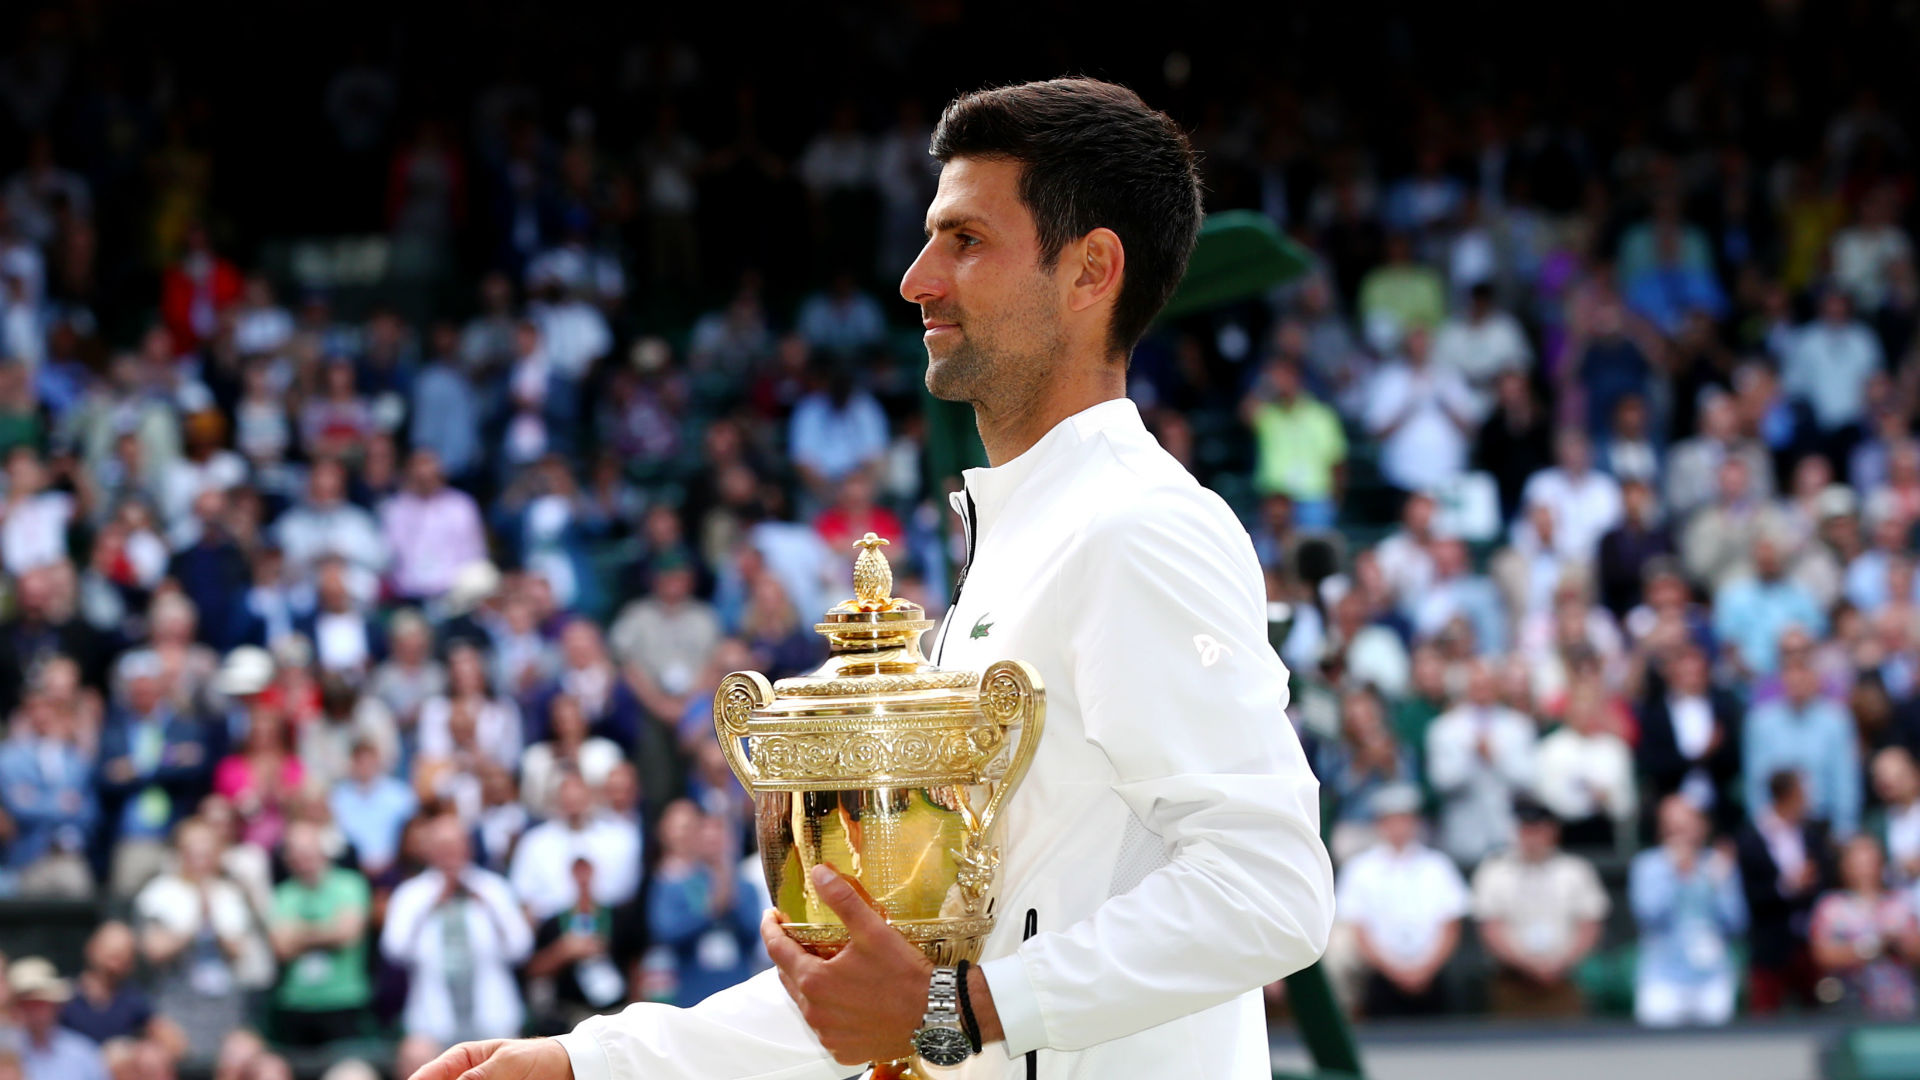 Djokovic motivated to have his best season in 2020, but insists trophies cannot fulfil him